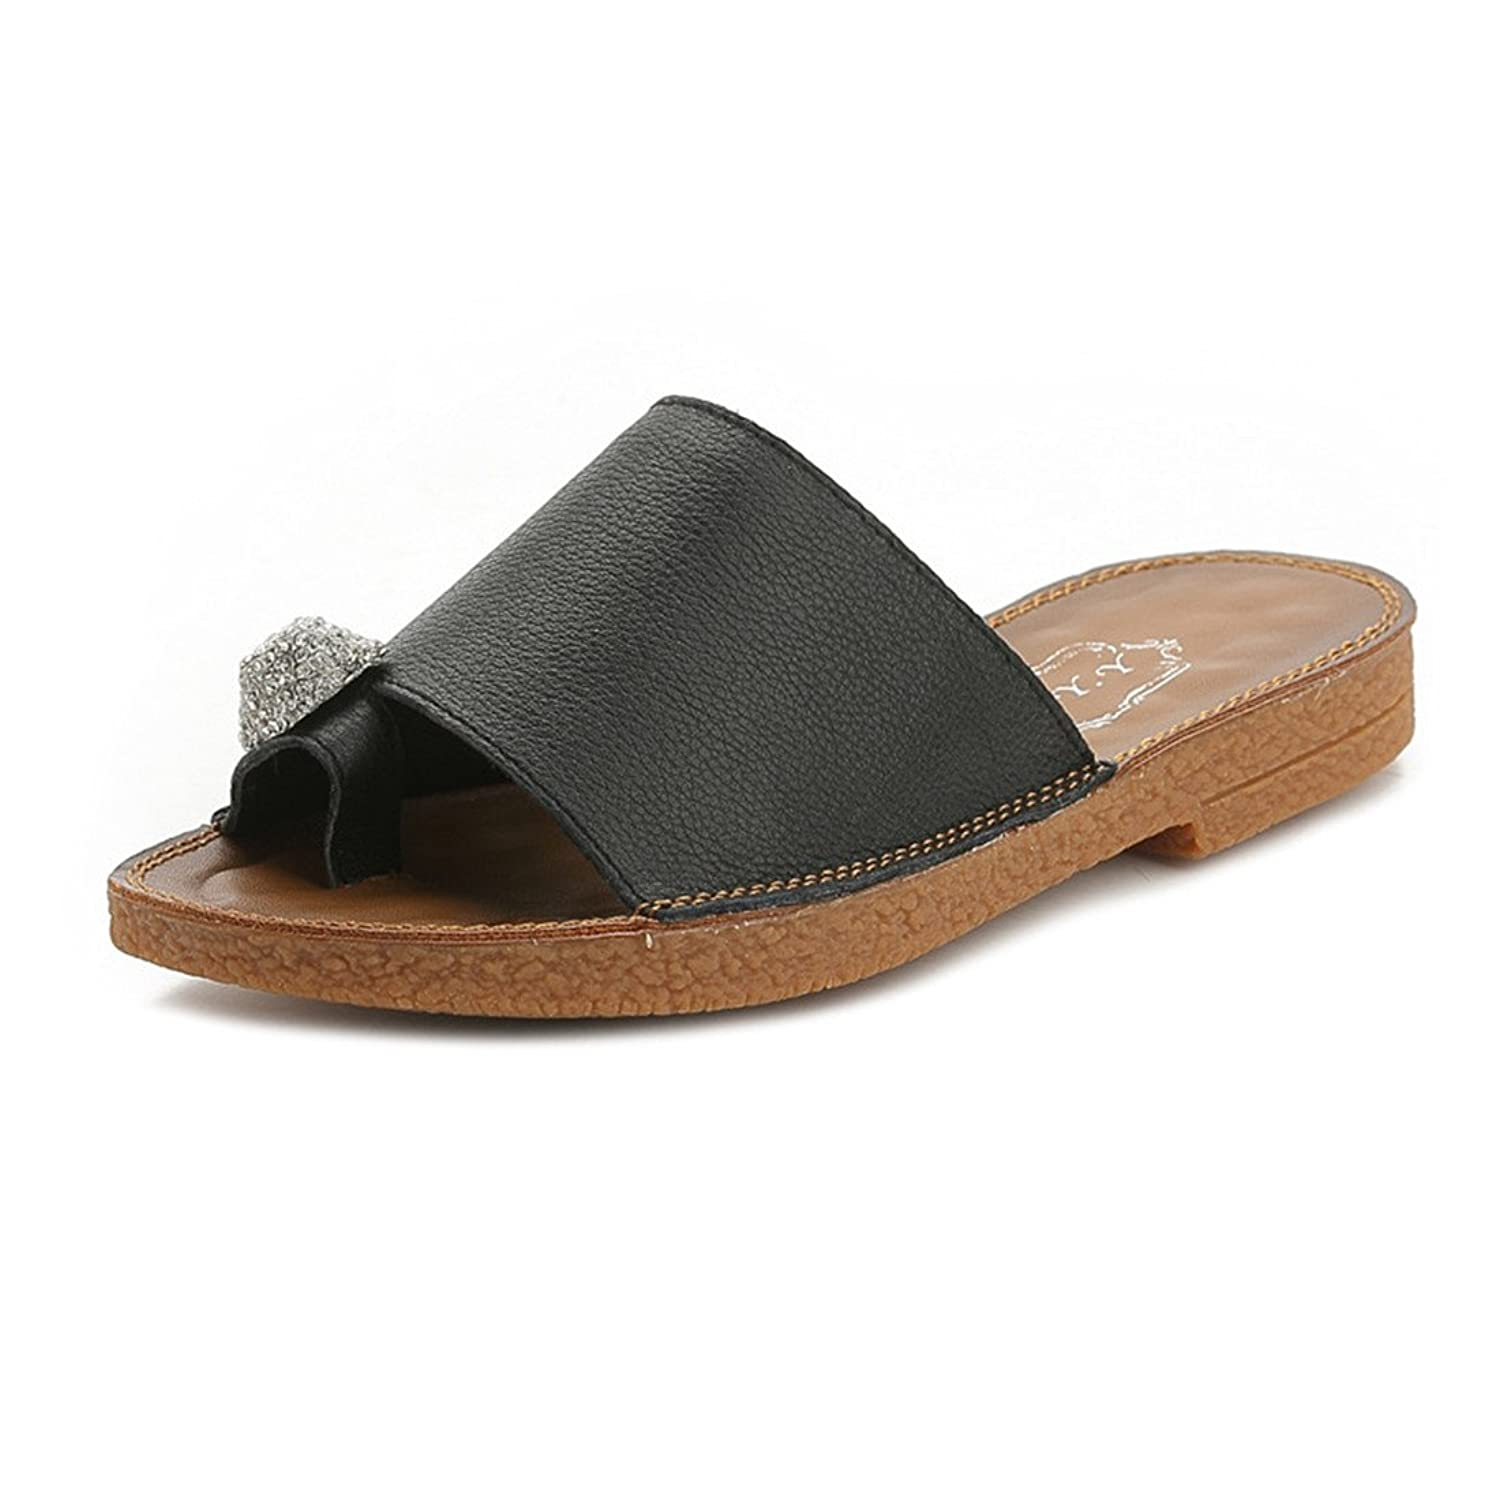 Women's Outdoor Leather Summer Beach Leather Casual Slippers 1587-3